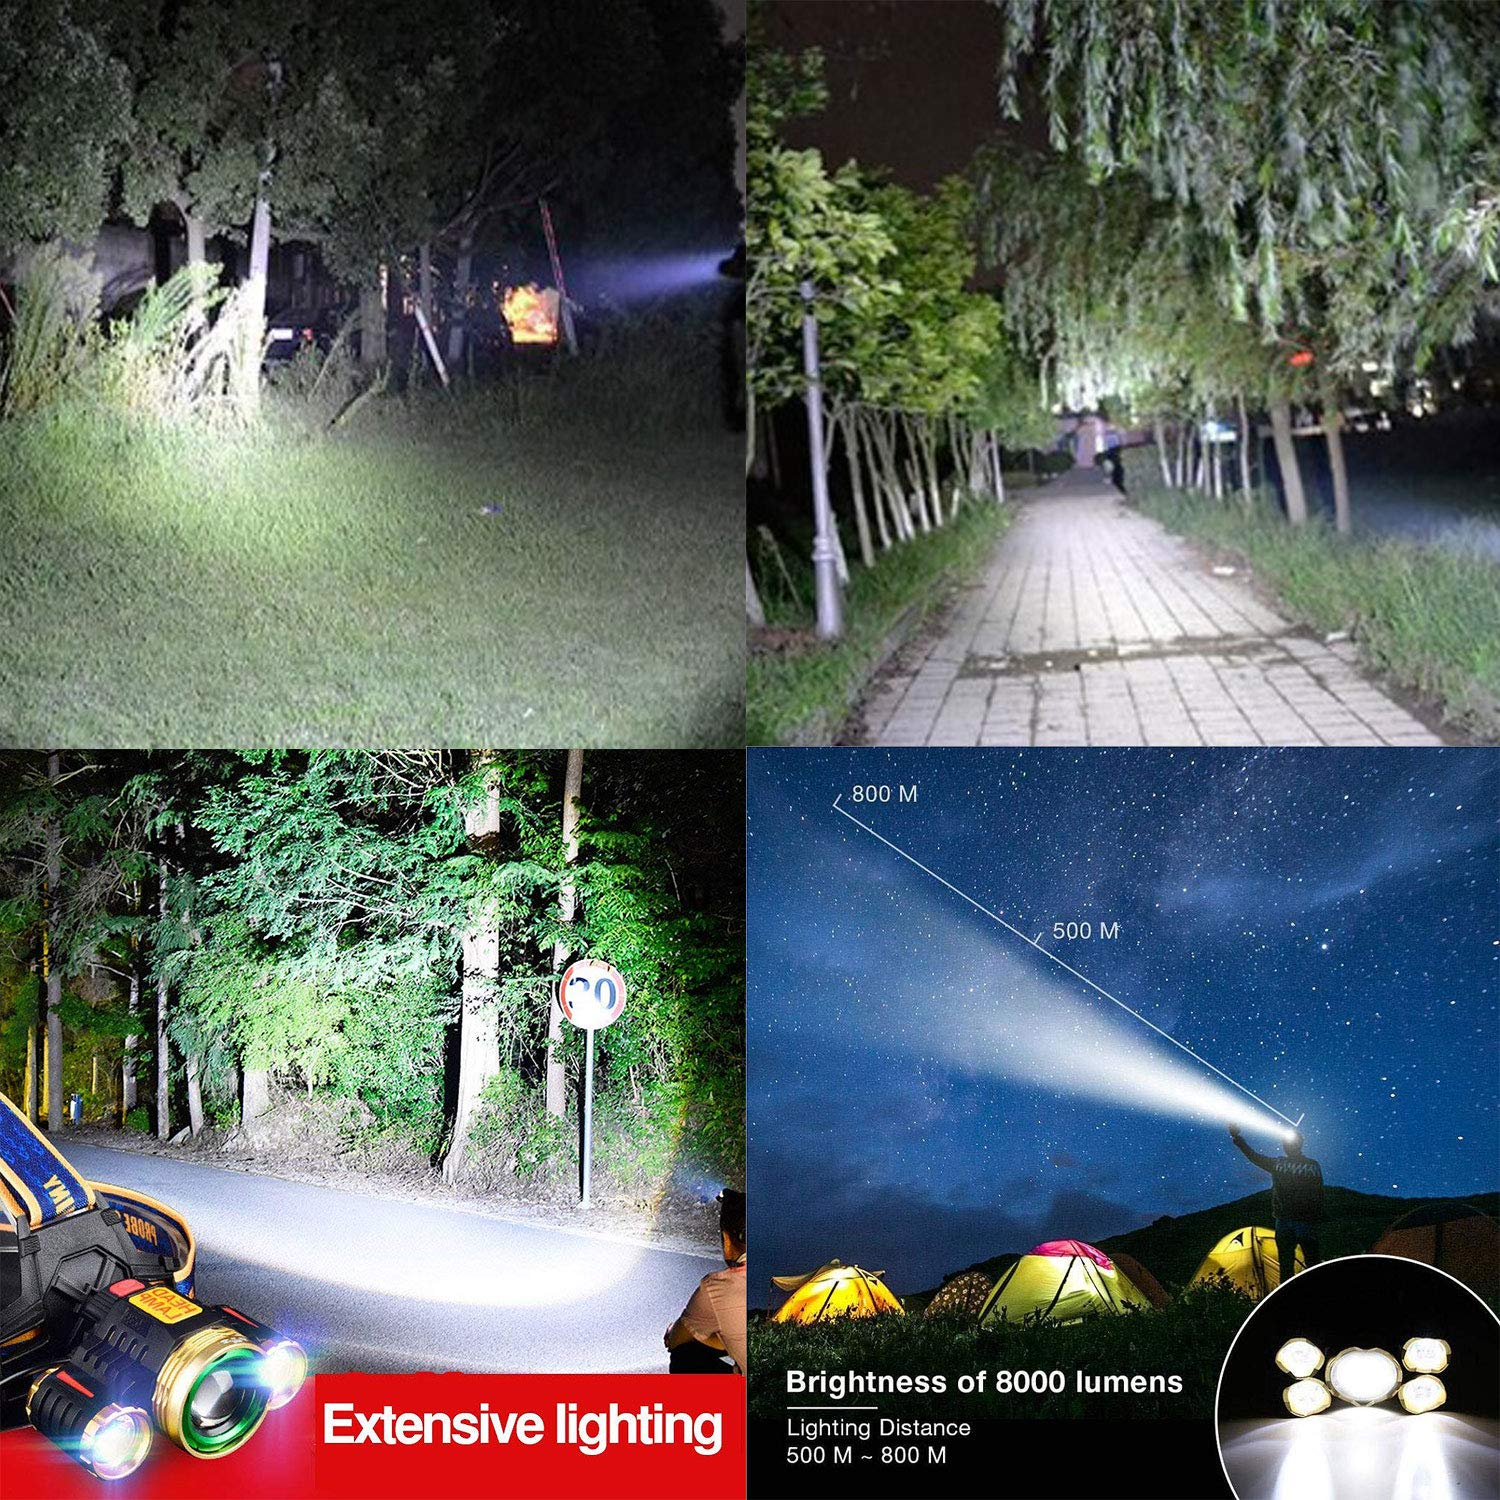 VERISA LED Head Torch Super Bright Zoomable, USB Rechargeable Waterproof Headlamp Adjustable Focus 4 Modes Headlight for Outdoor Camping Fishing Hunting Hiking Running Walking Cycling